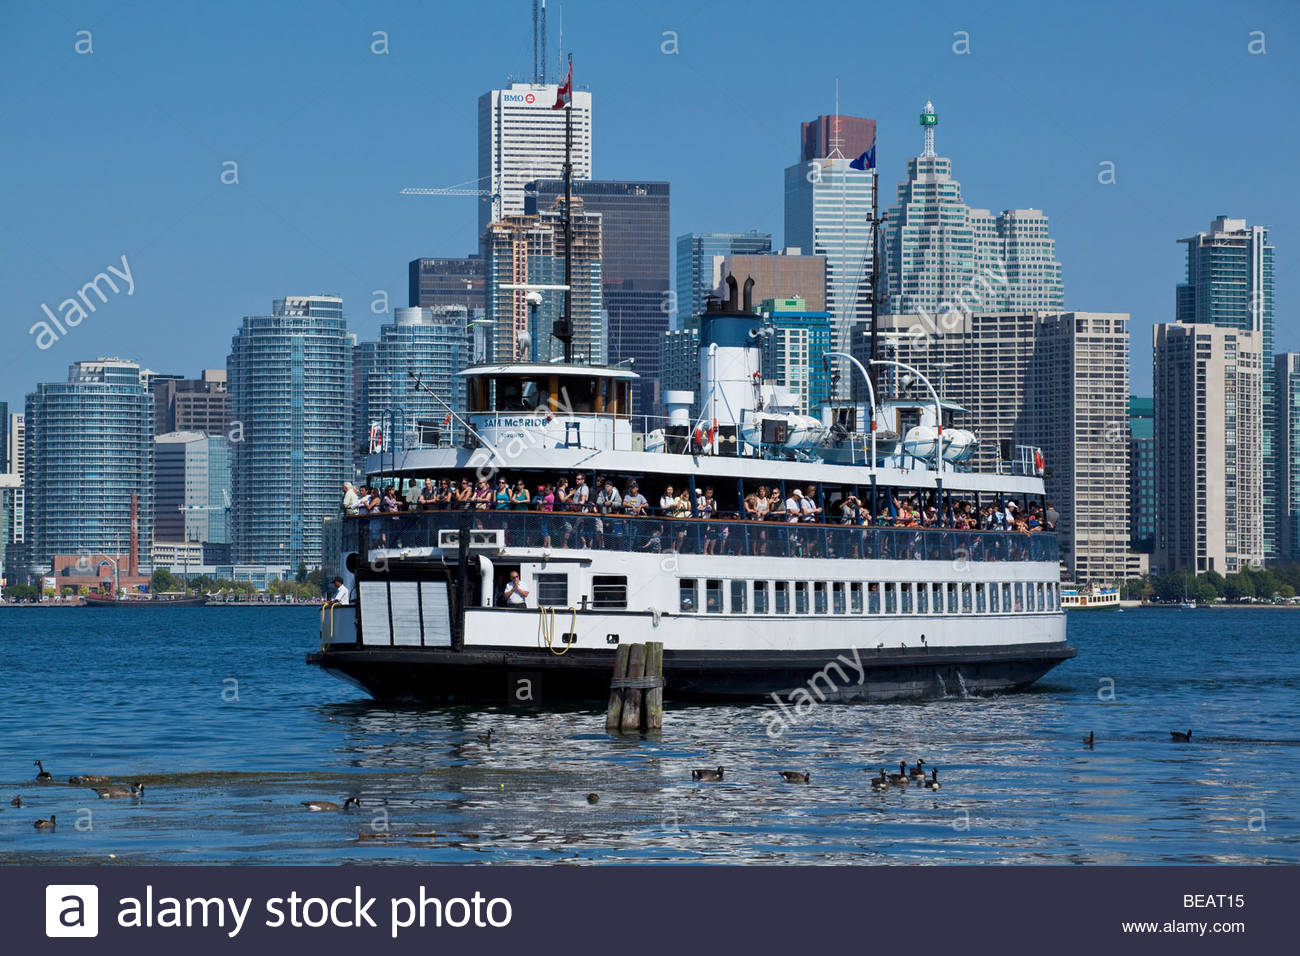 Ferry on way to Toronto Islands Park with city in background at Toronto Ontario Canada Stock Photo